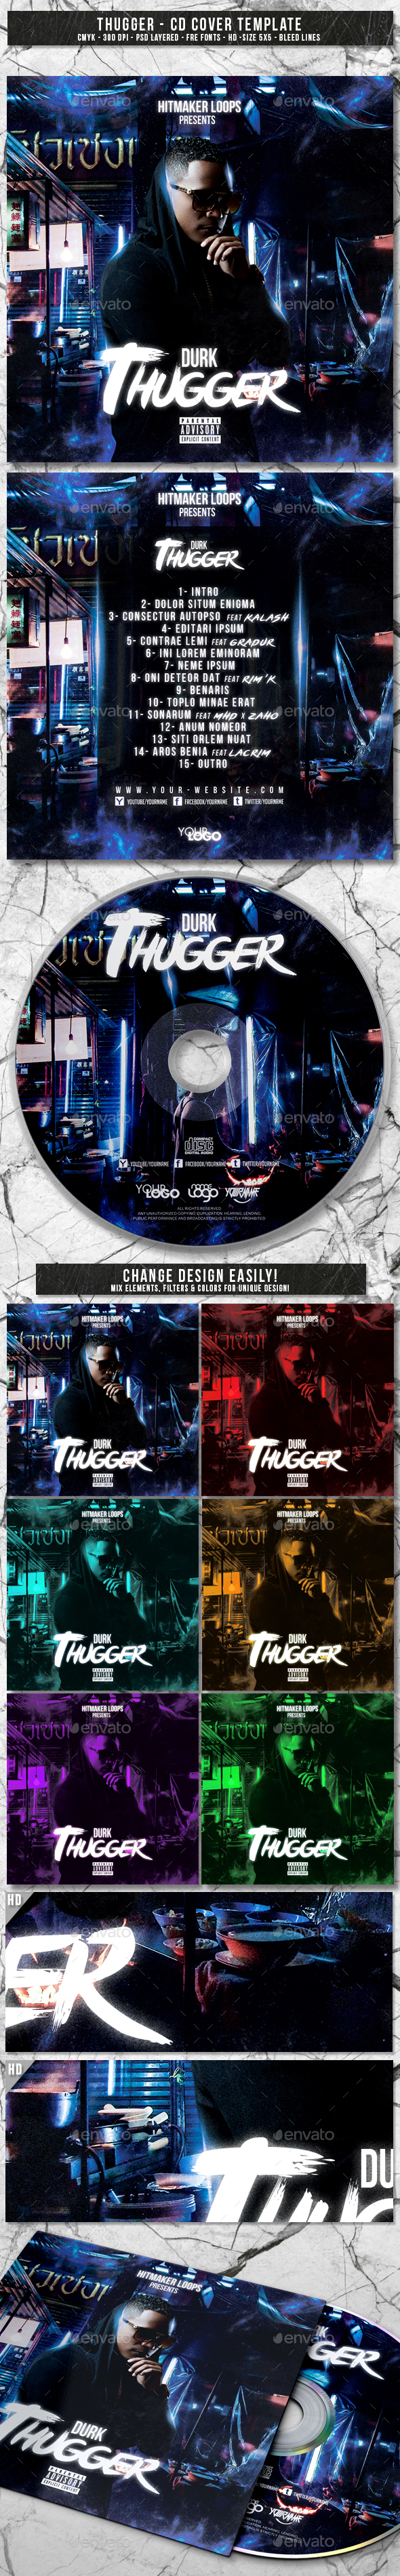 GraphicRiver Thugger Album CD Mixtape Cover Template 20785258